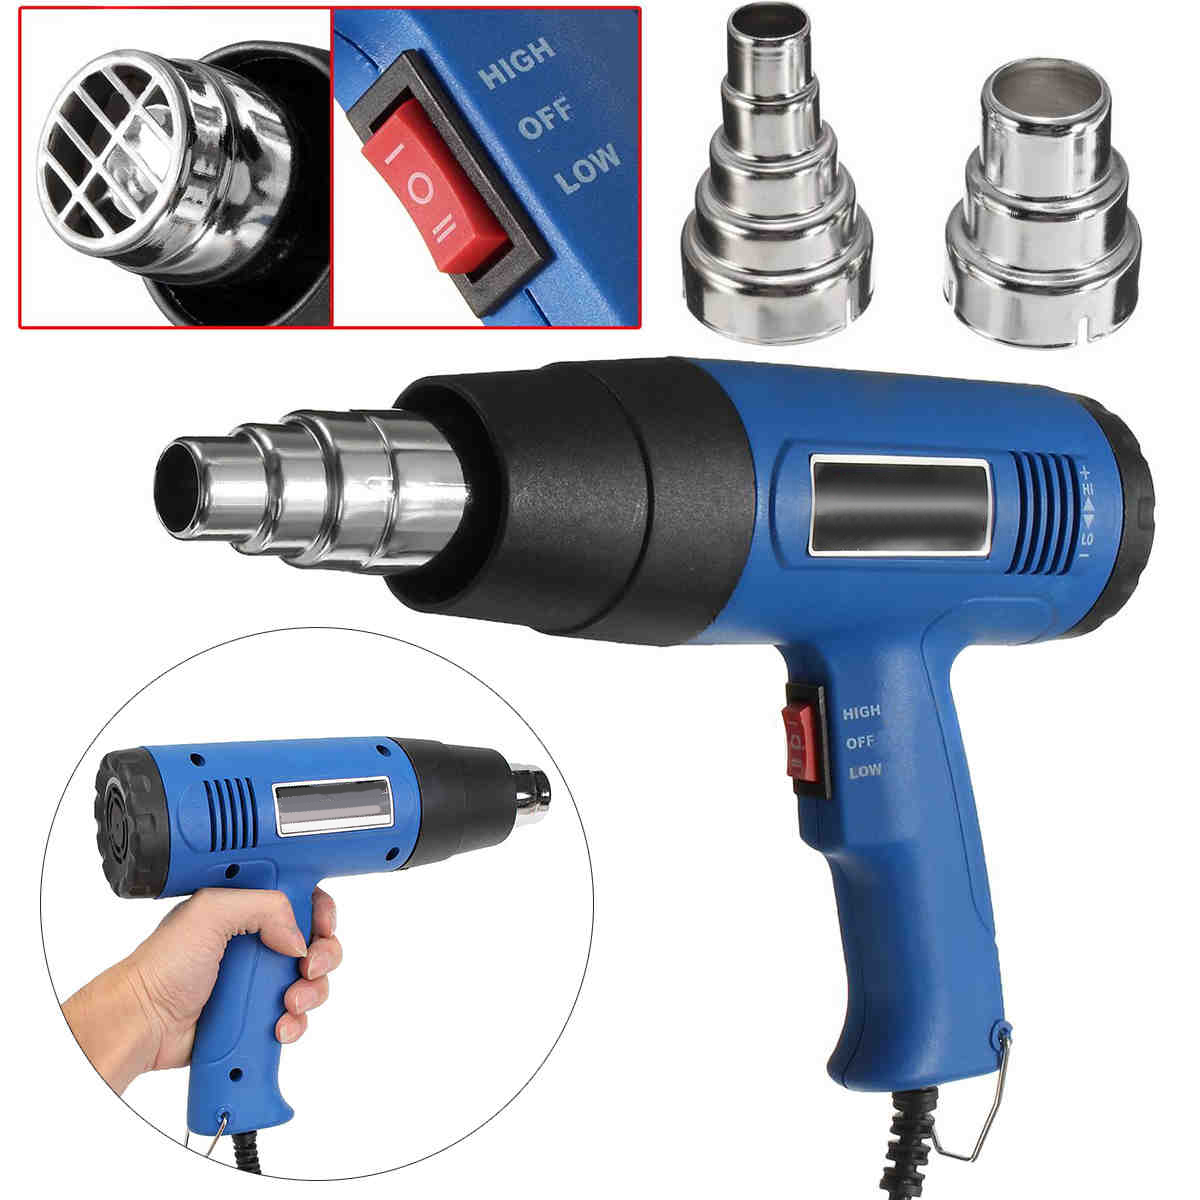 OSSIEAO New Hot Air Heat Blower 1800W 600 Degrees Celsius Paint Drying Striping Tool &amp; 2 Nozzles Blue<br>